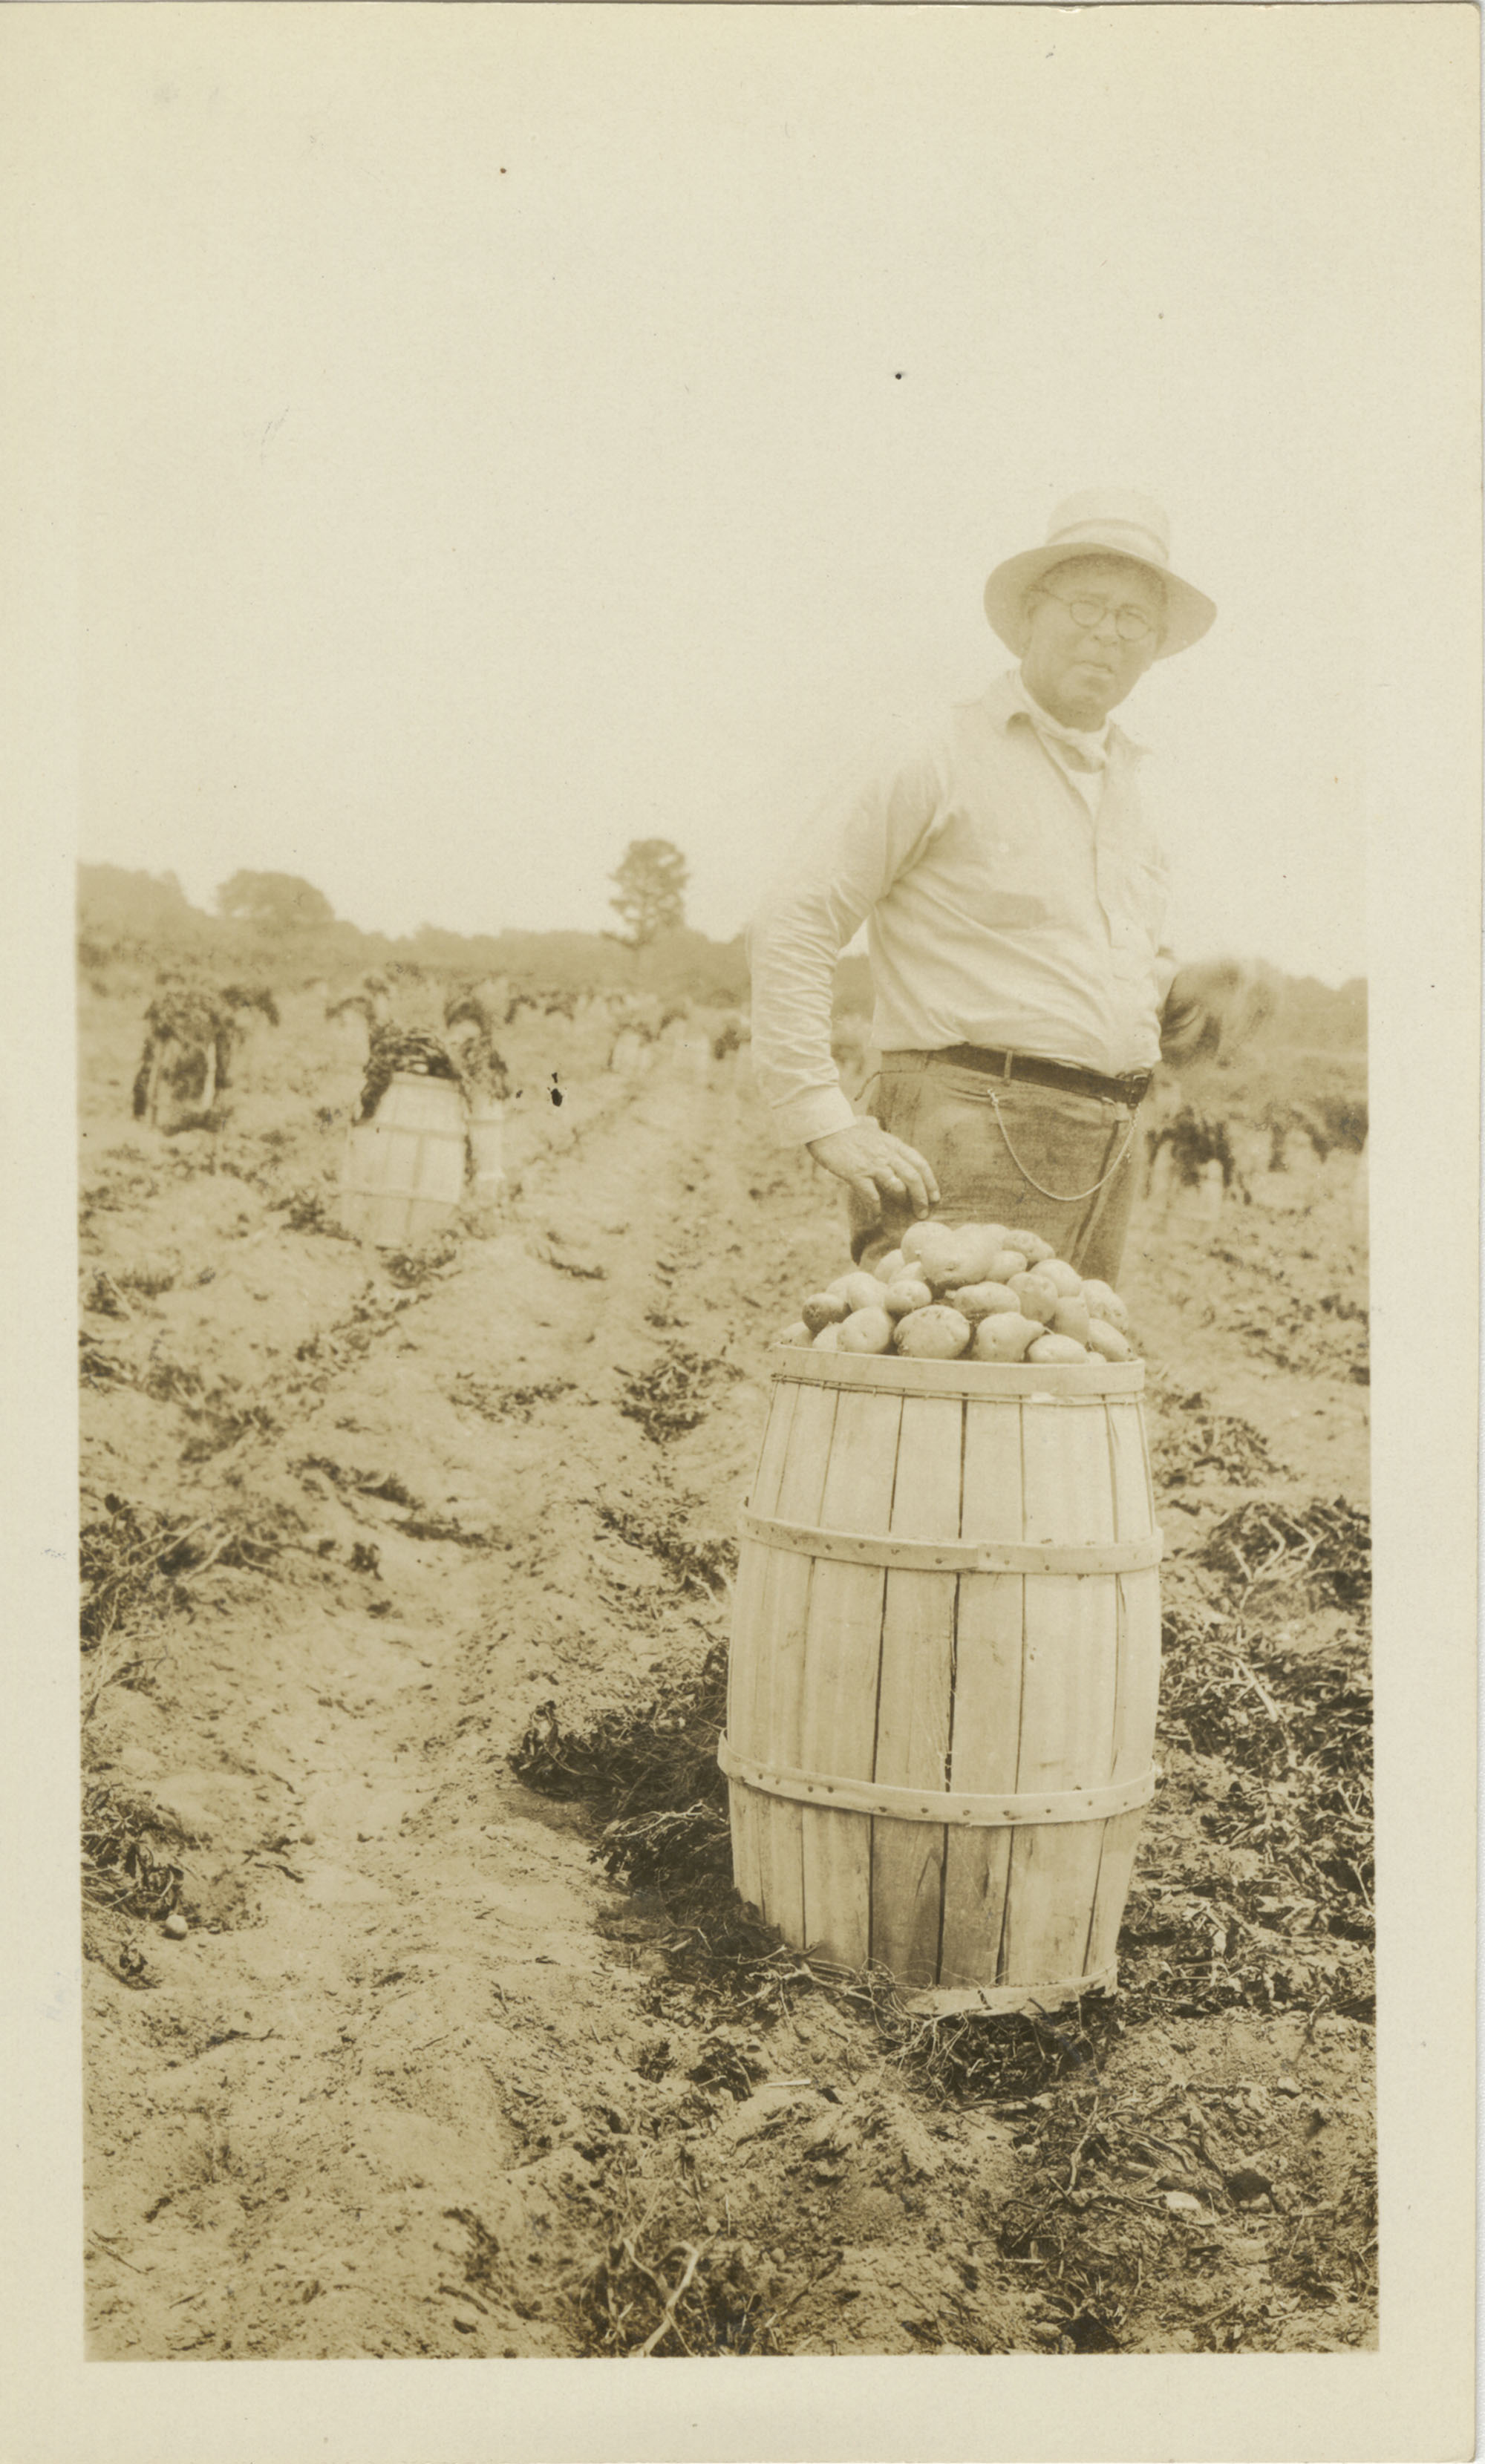 Man Next To a Barrel of Potatoes